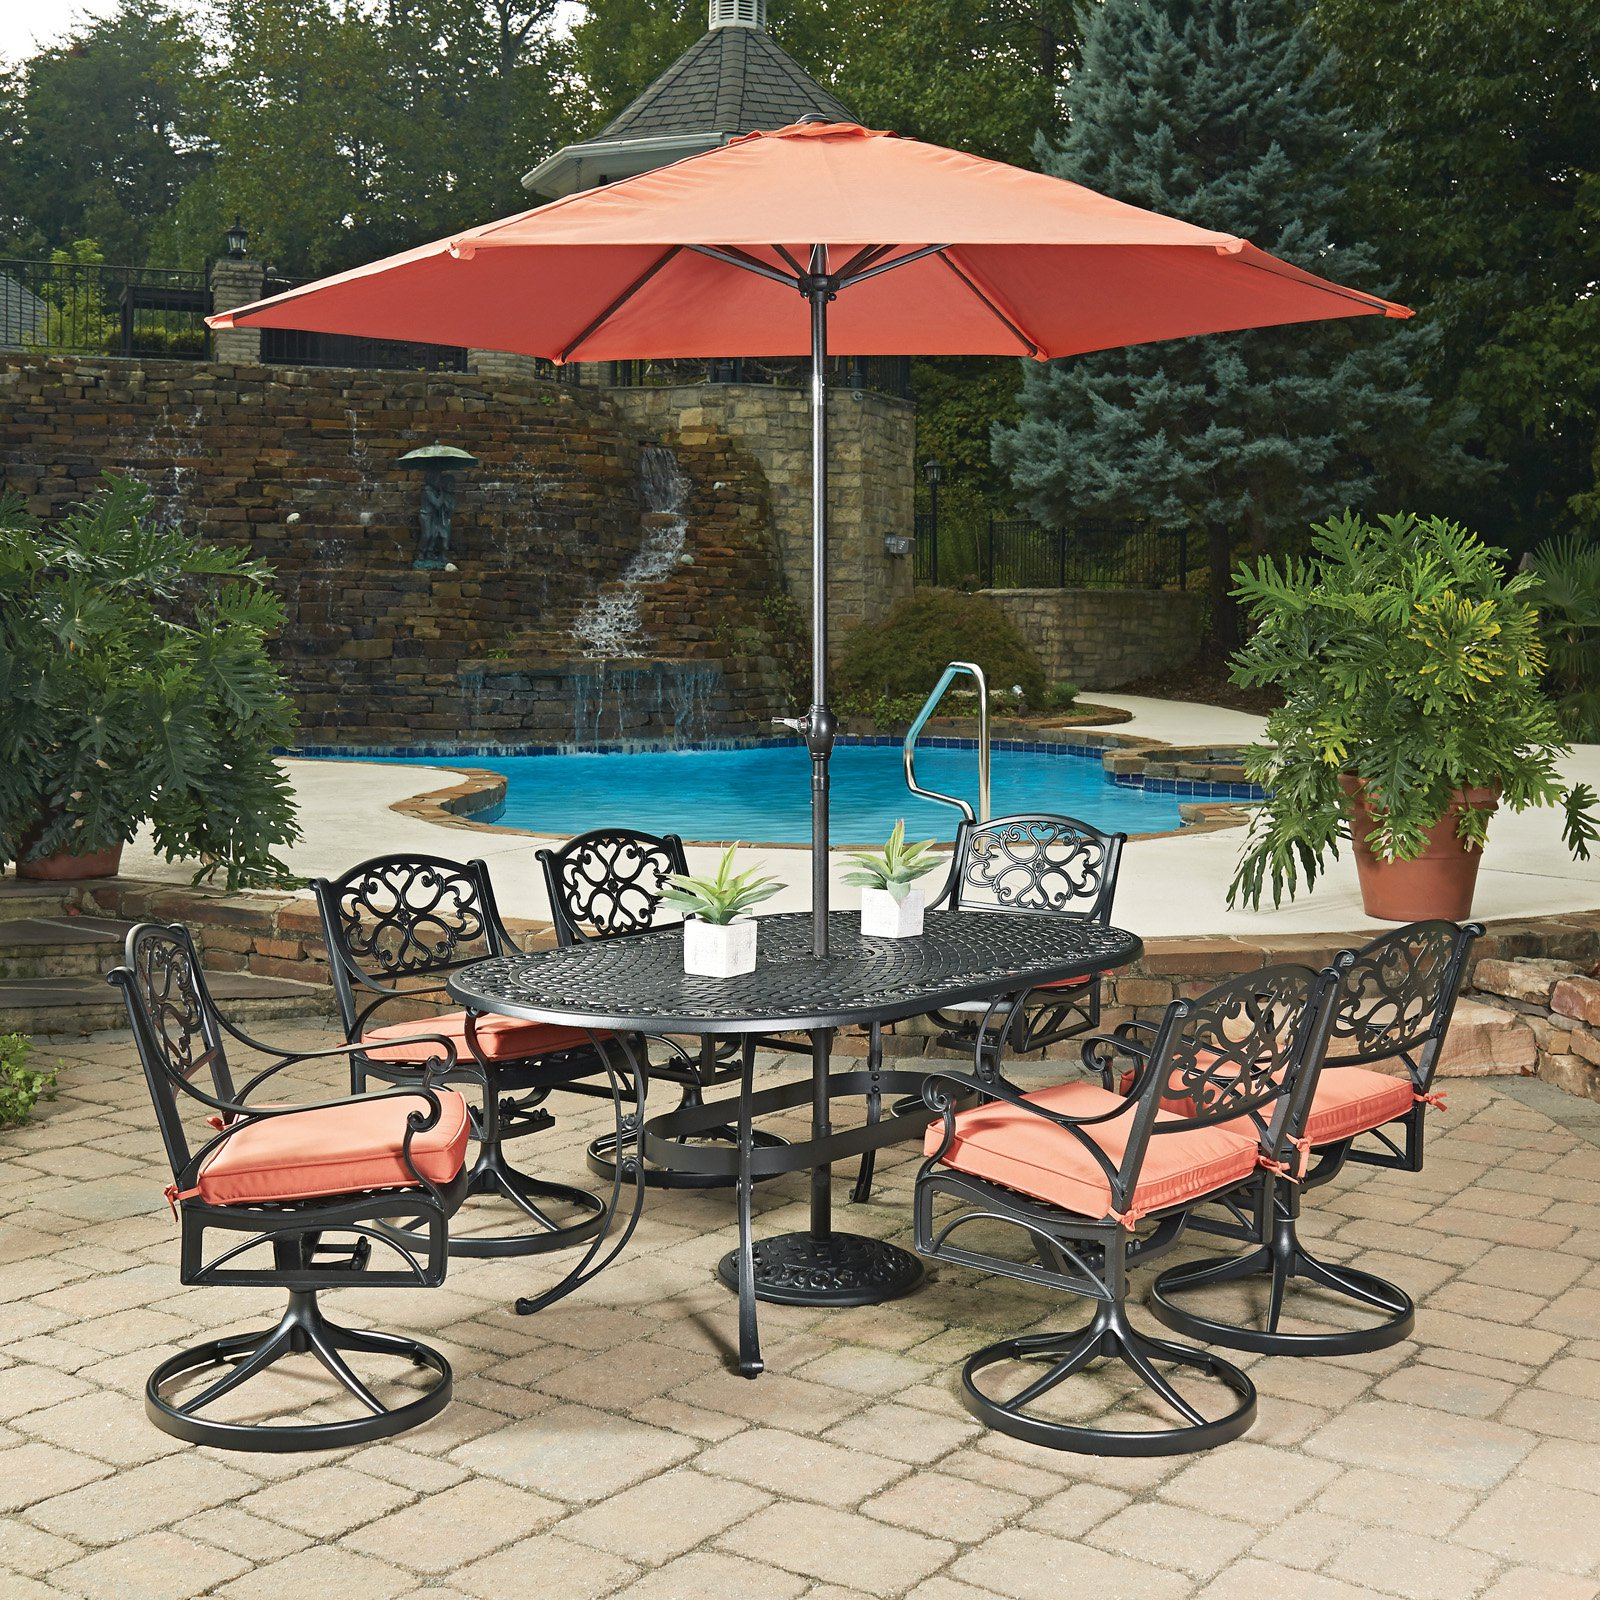 Biscayne Black Oval 9 Pc Outdoor Dining Table, 6 Swivel Rocking Chairs with Cushions & Umbrella with Base